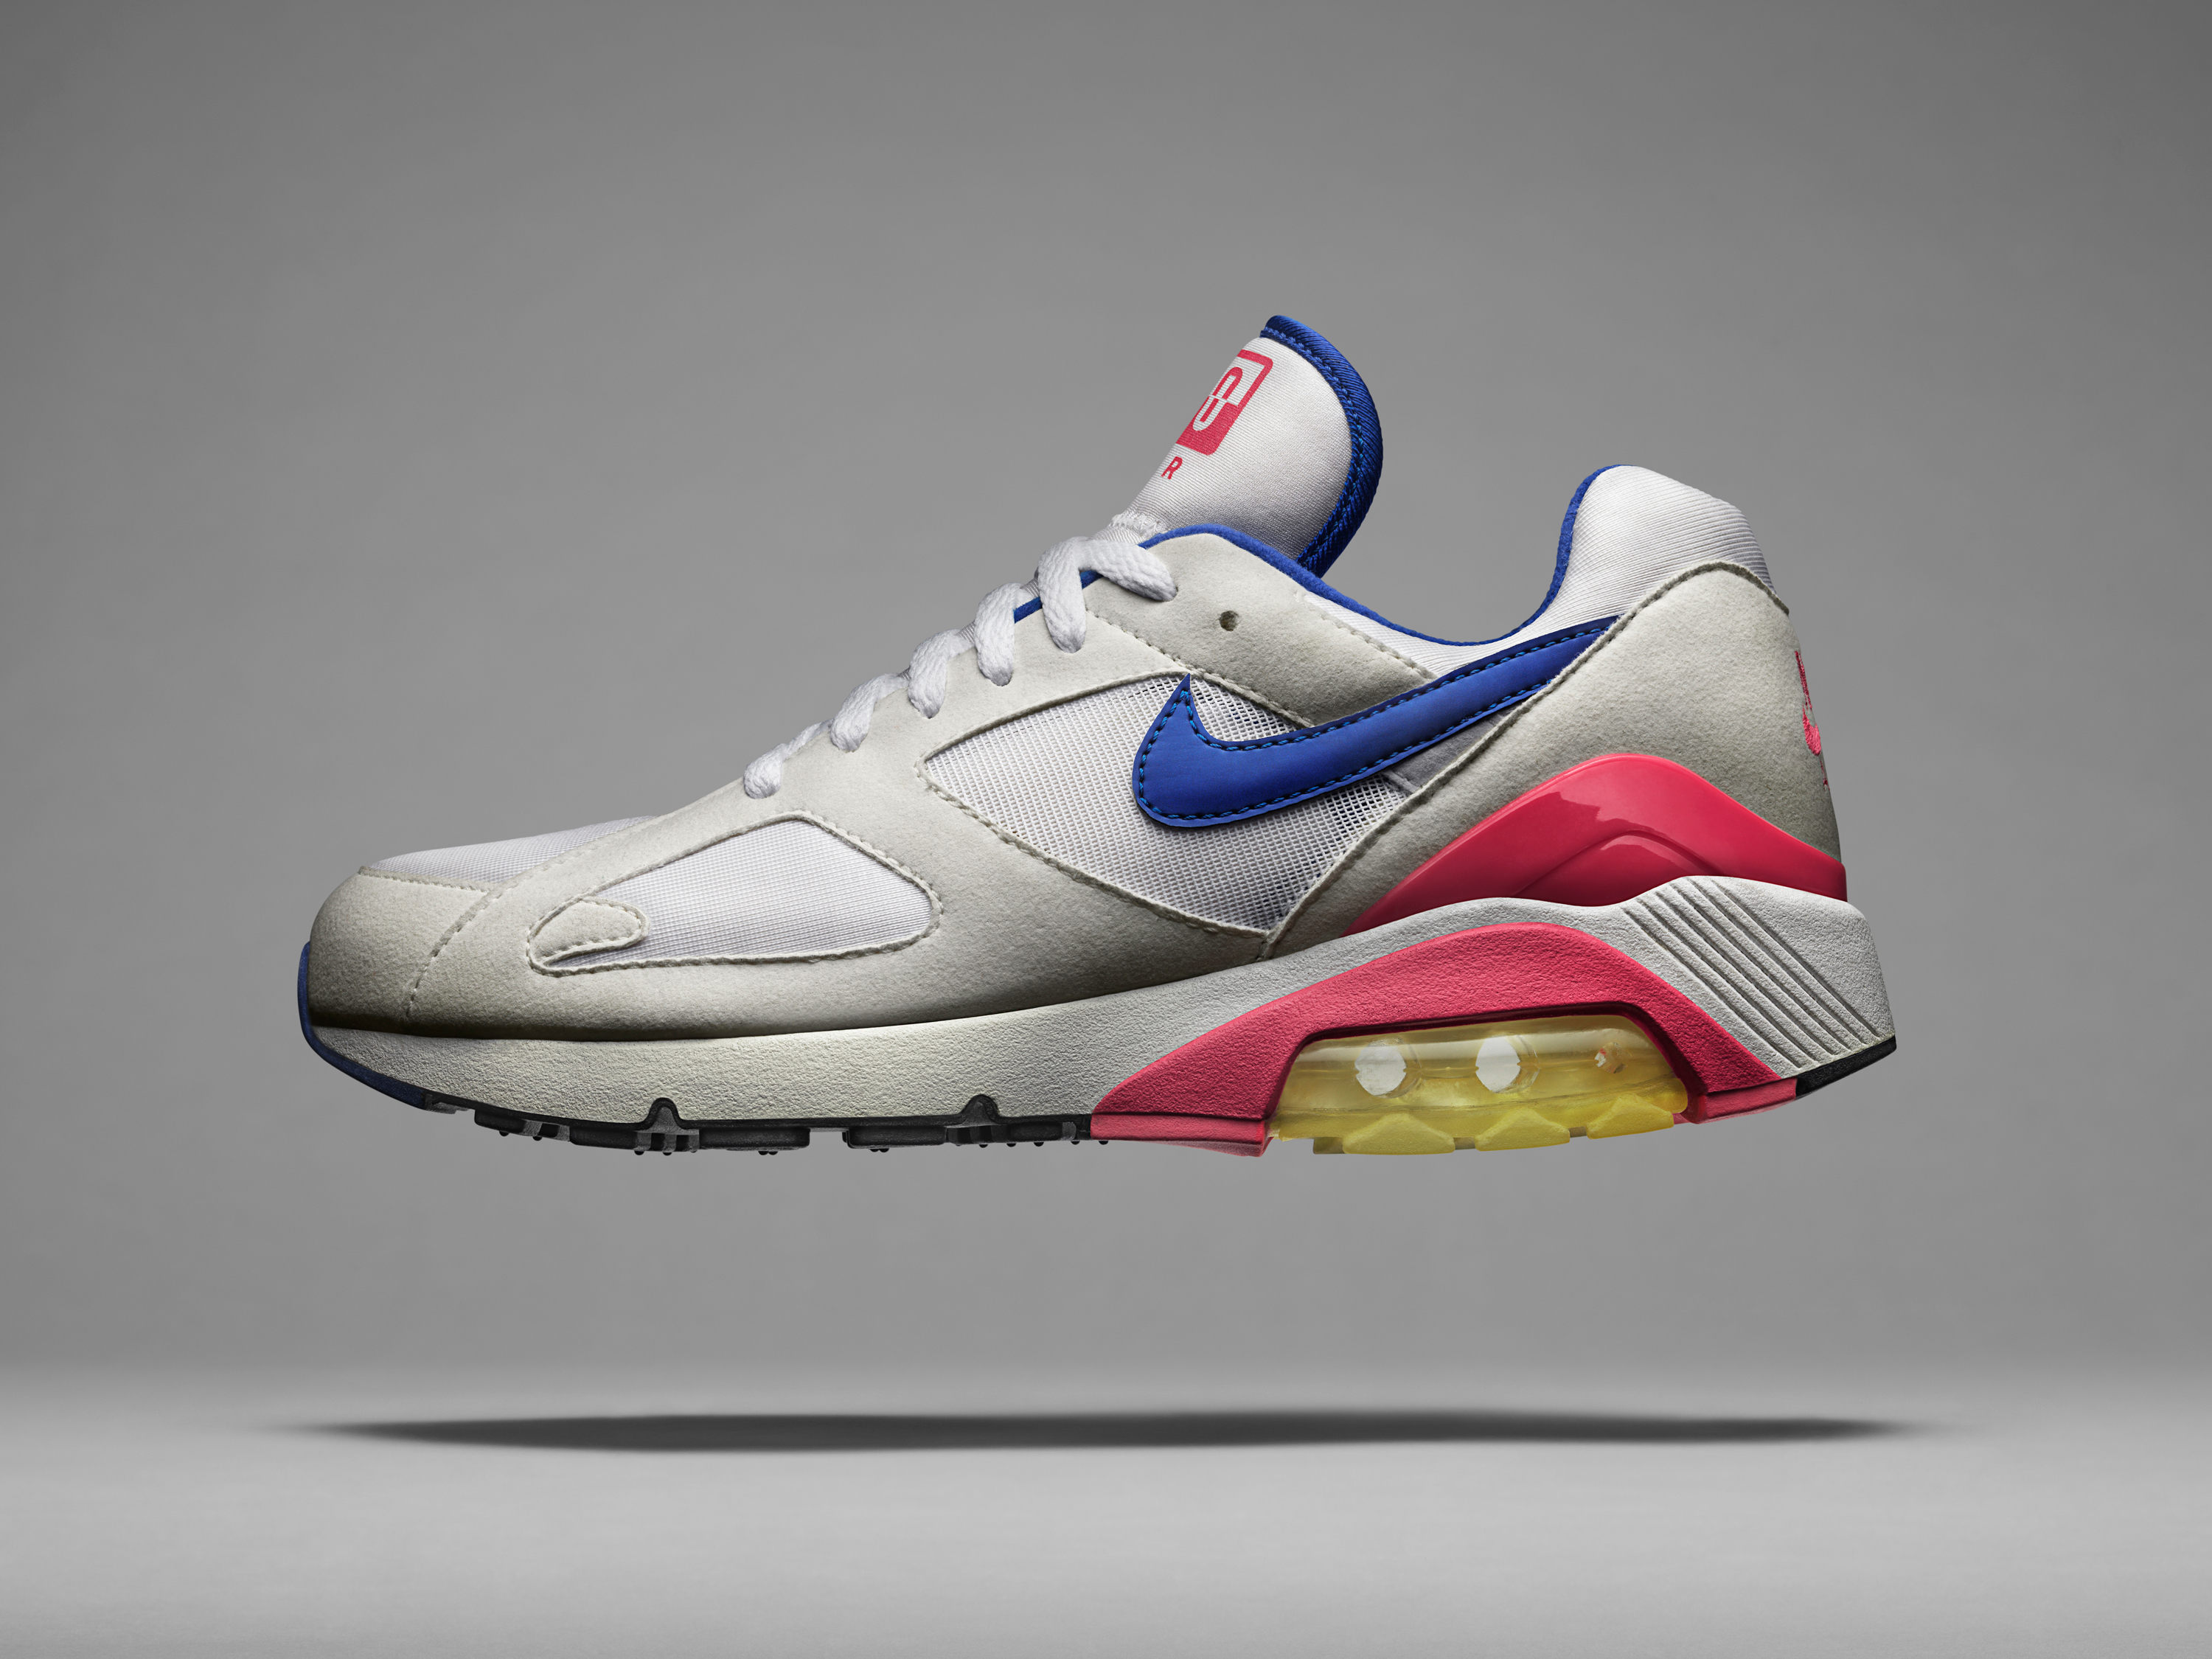 24f08eabea ... the Air Max 93, it has, however, a look that is clean and modern.